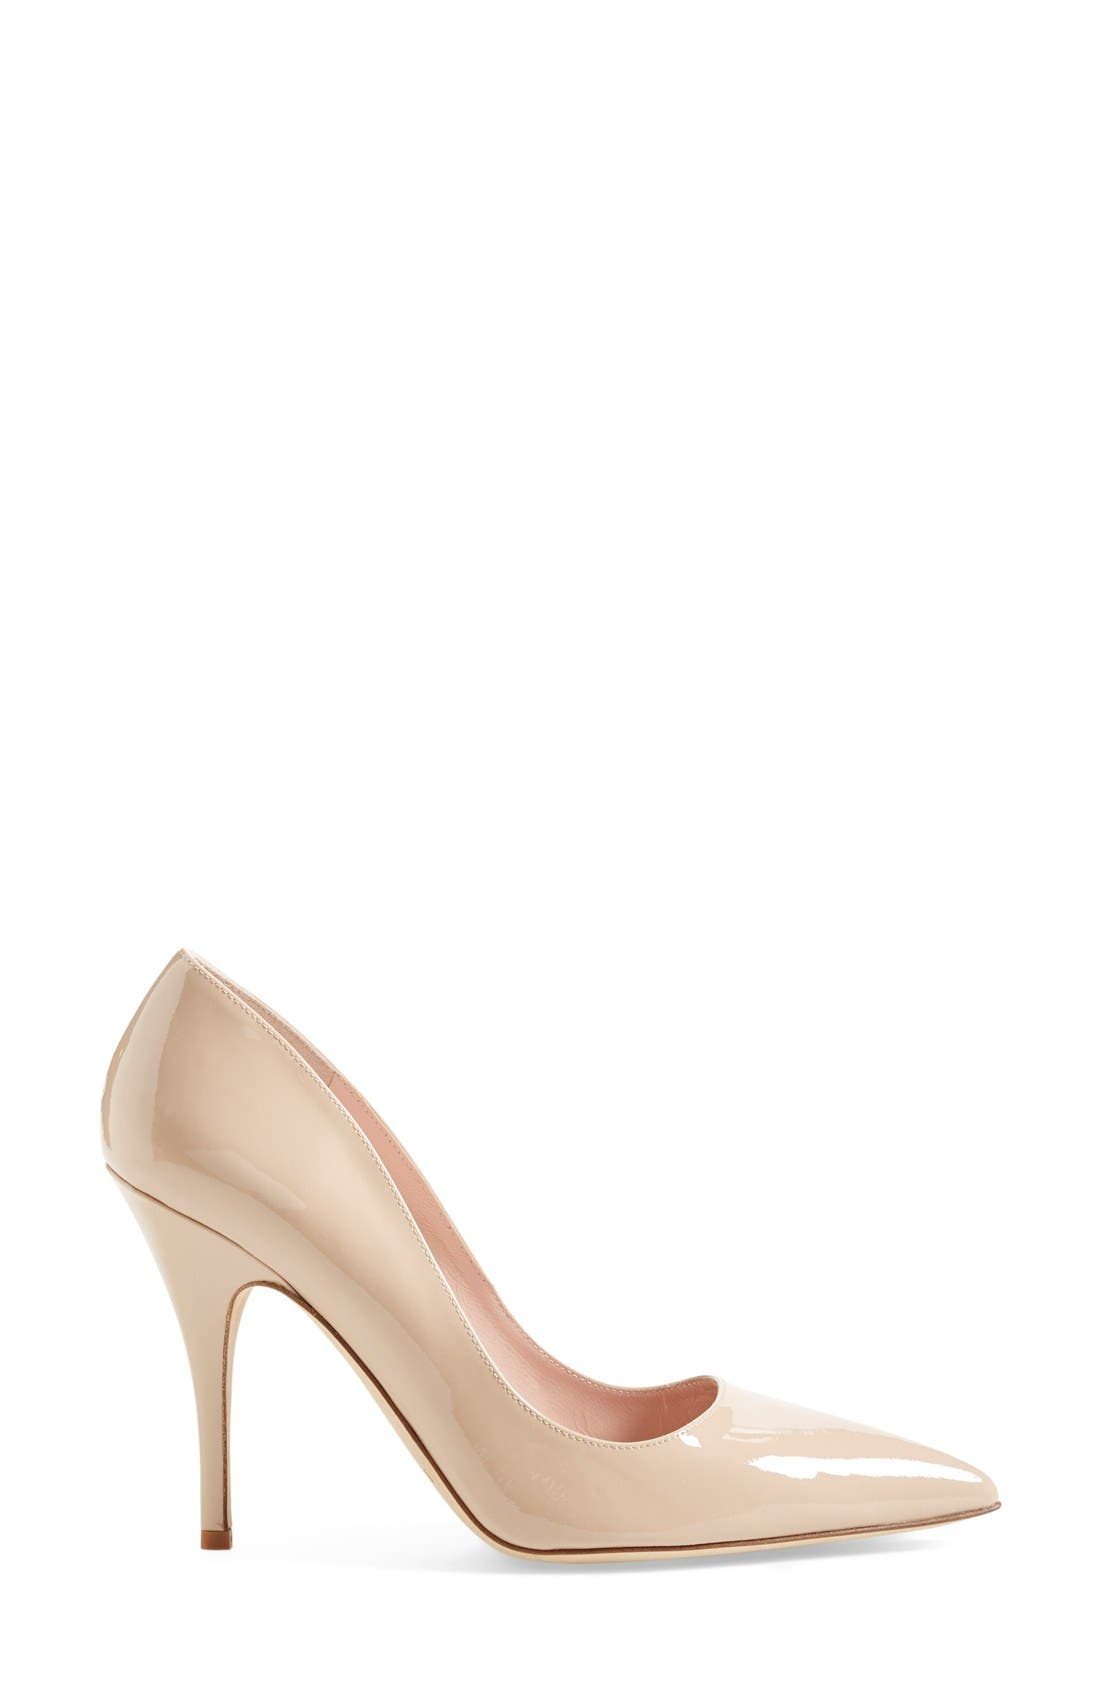 Alternate Image 4  - kate spade new york 'licorice too' pump (Women)